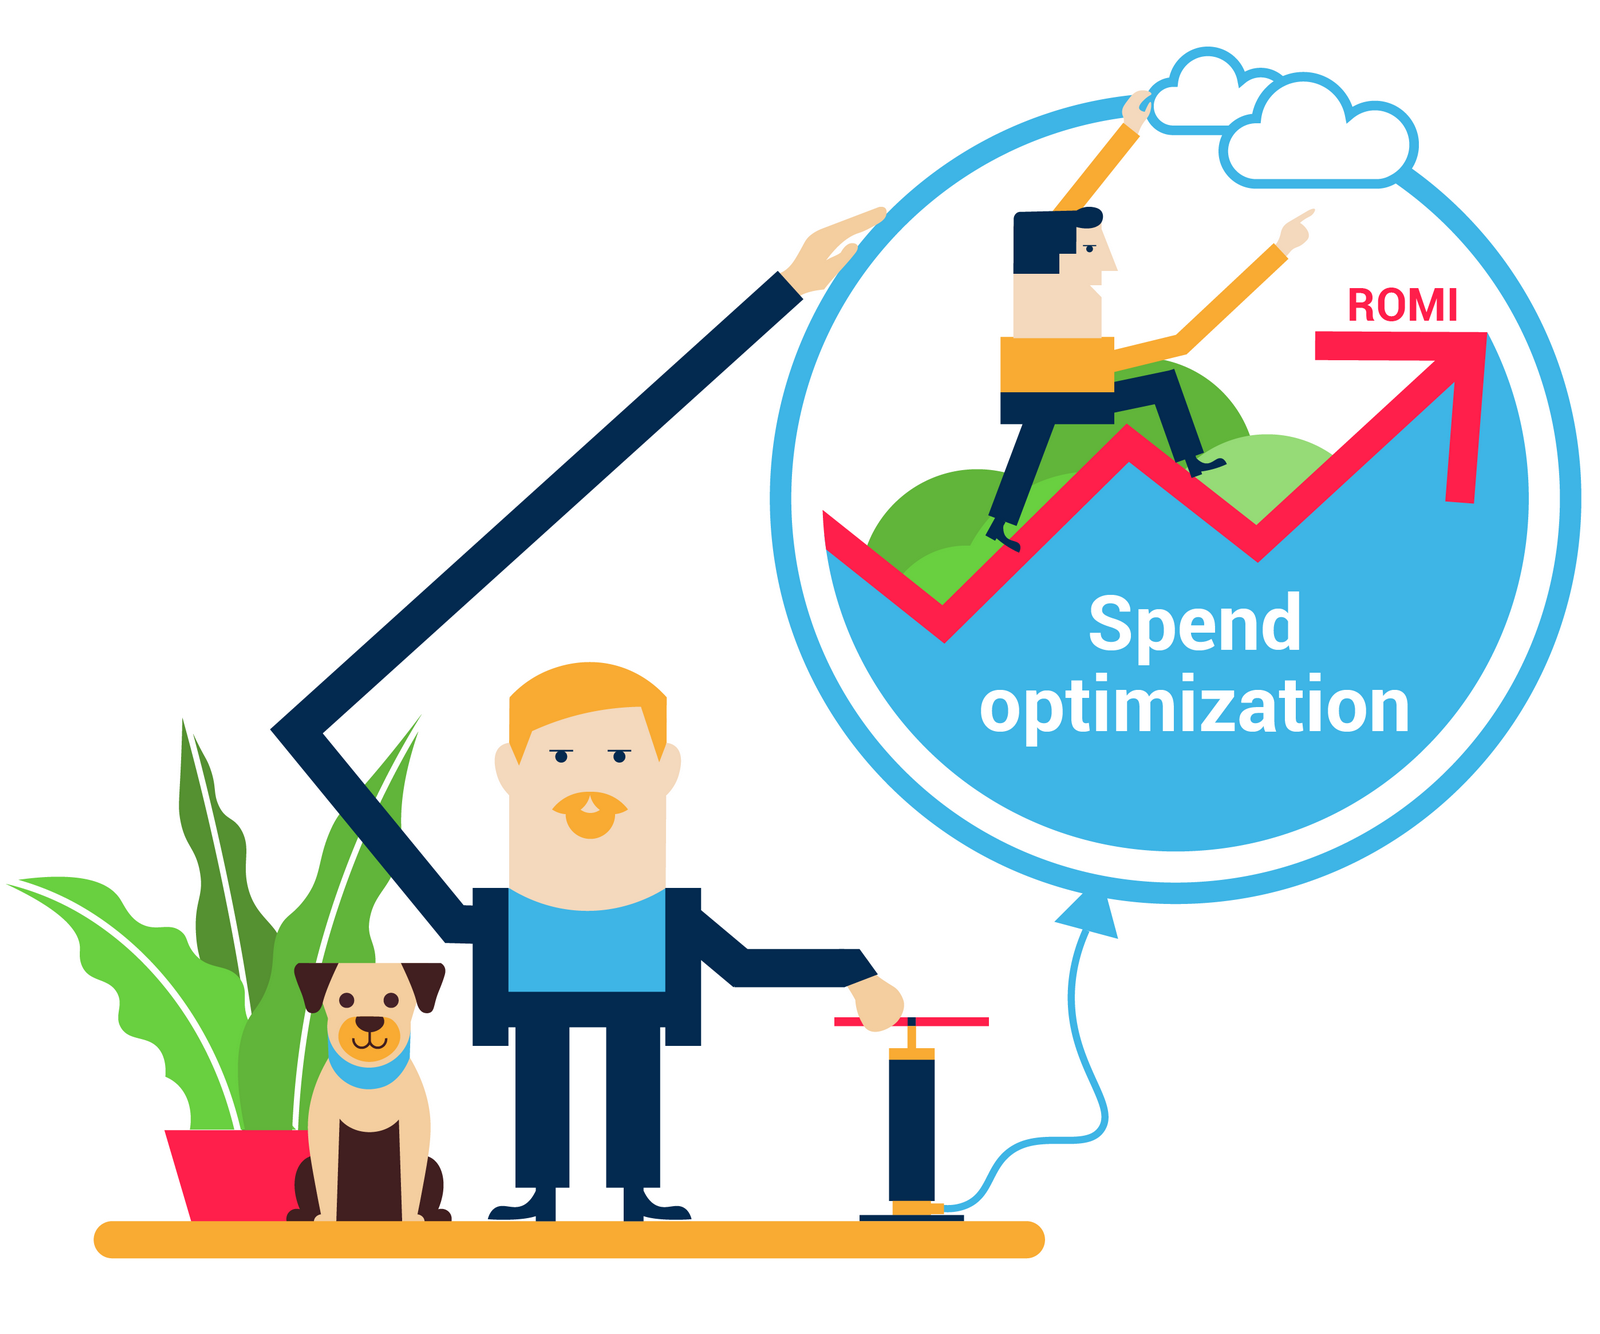 media budgeting, high ROMI, ROMI increase, marketing spend optimization, real-time marketing accountability, marketing transparency, marketing effectiveness, digital transformation, AdoptoMedia, CheckMedia Solution, best media measurement tools, marketing technology, martech